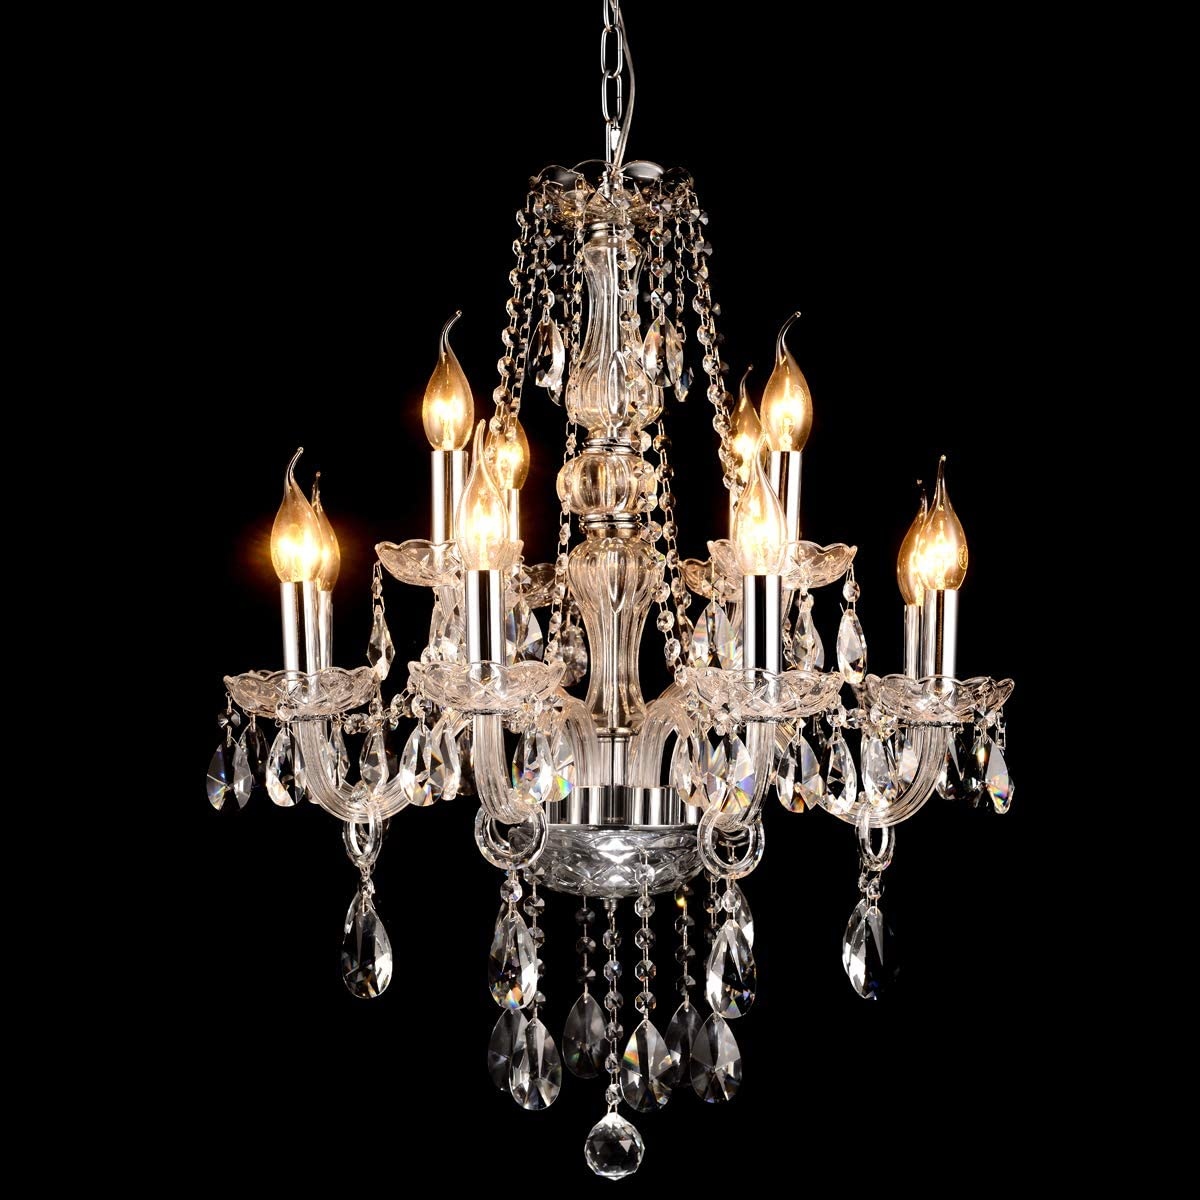 BEIRIO Modern Luxurious K9 Crystal Chandelier Classic 12-Lights Pendant Ceiling Lighting Fixture